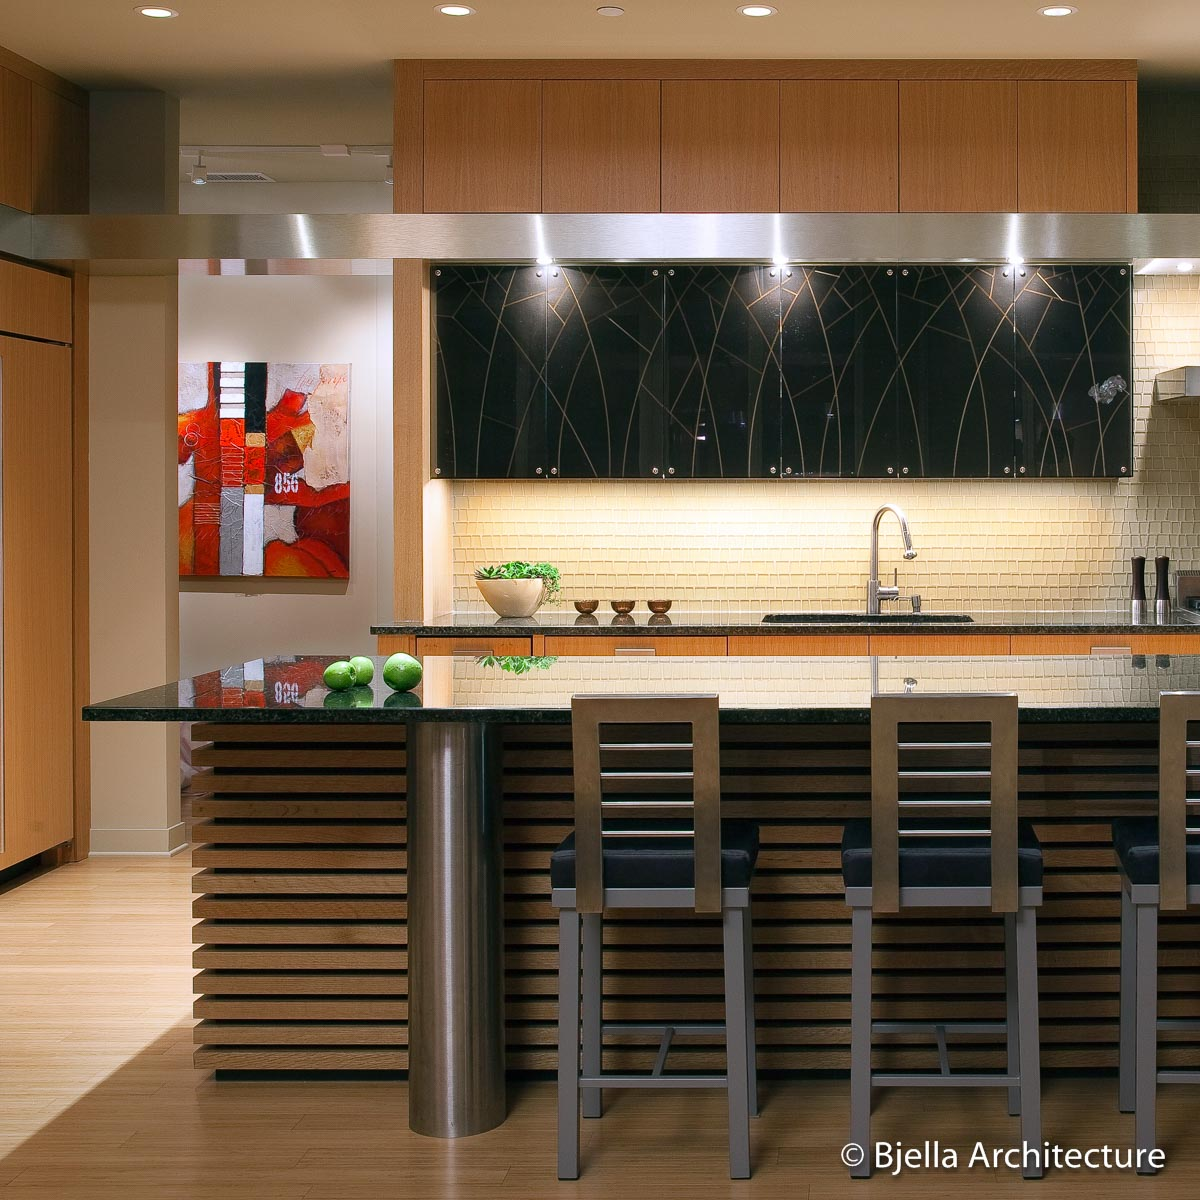 Kitchen Design Minneapolis Mn Modern Zen Kitchen Design In Minneapolis Minnesota Art